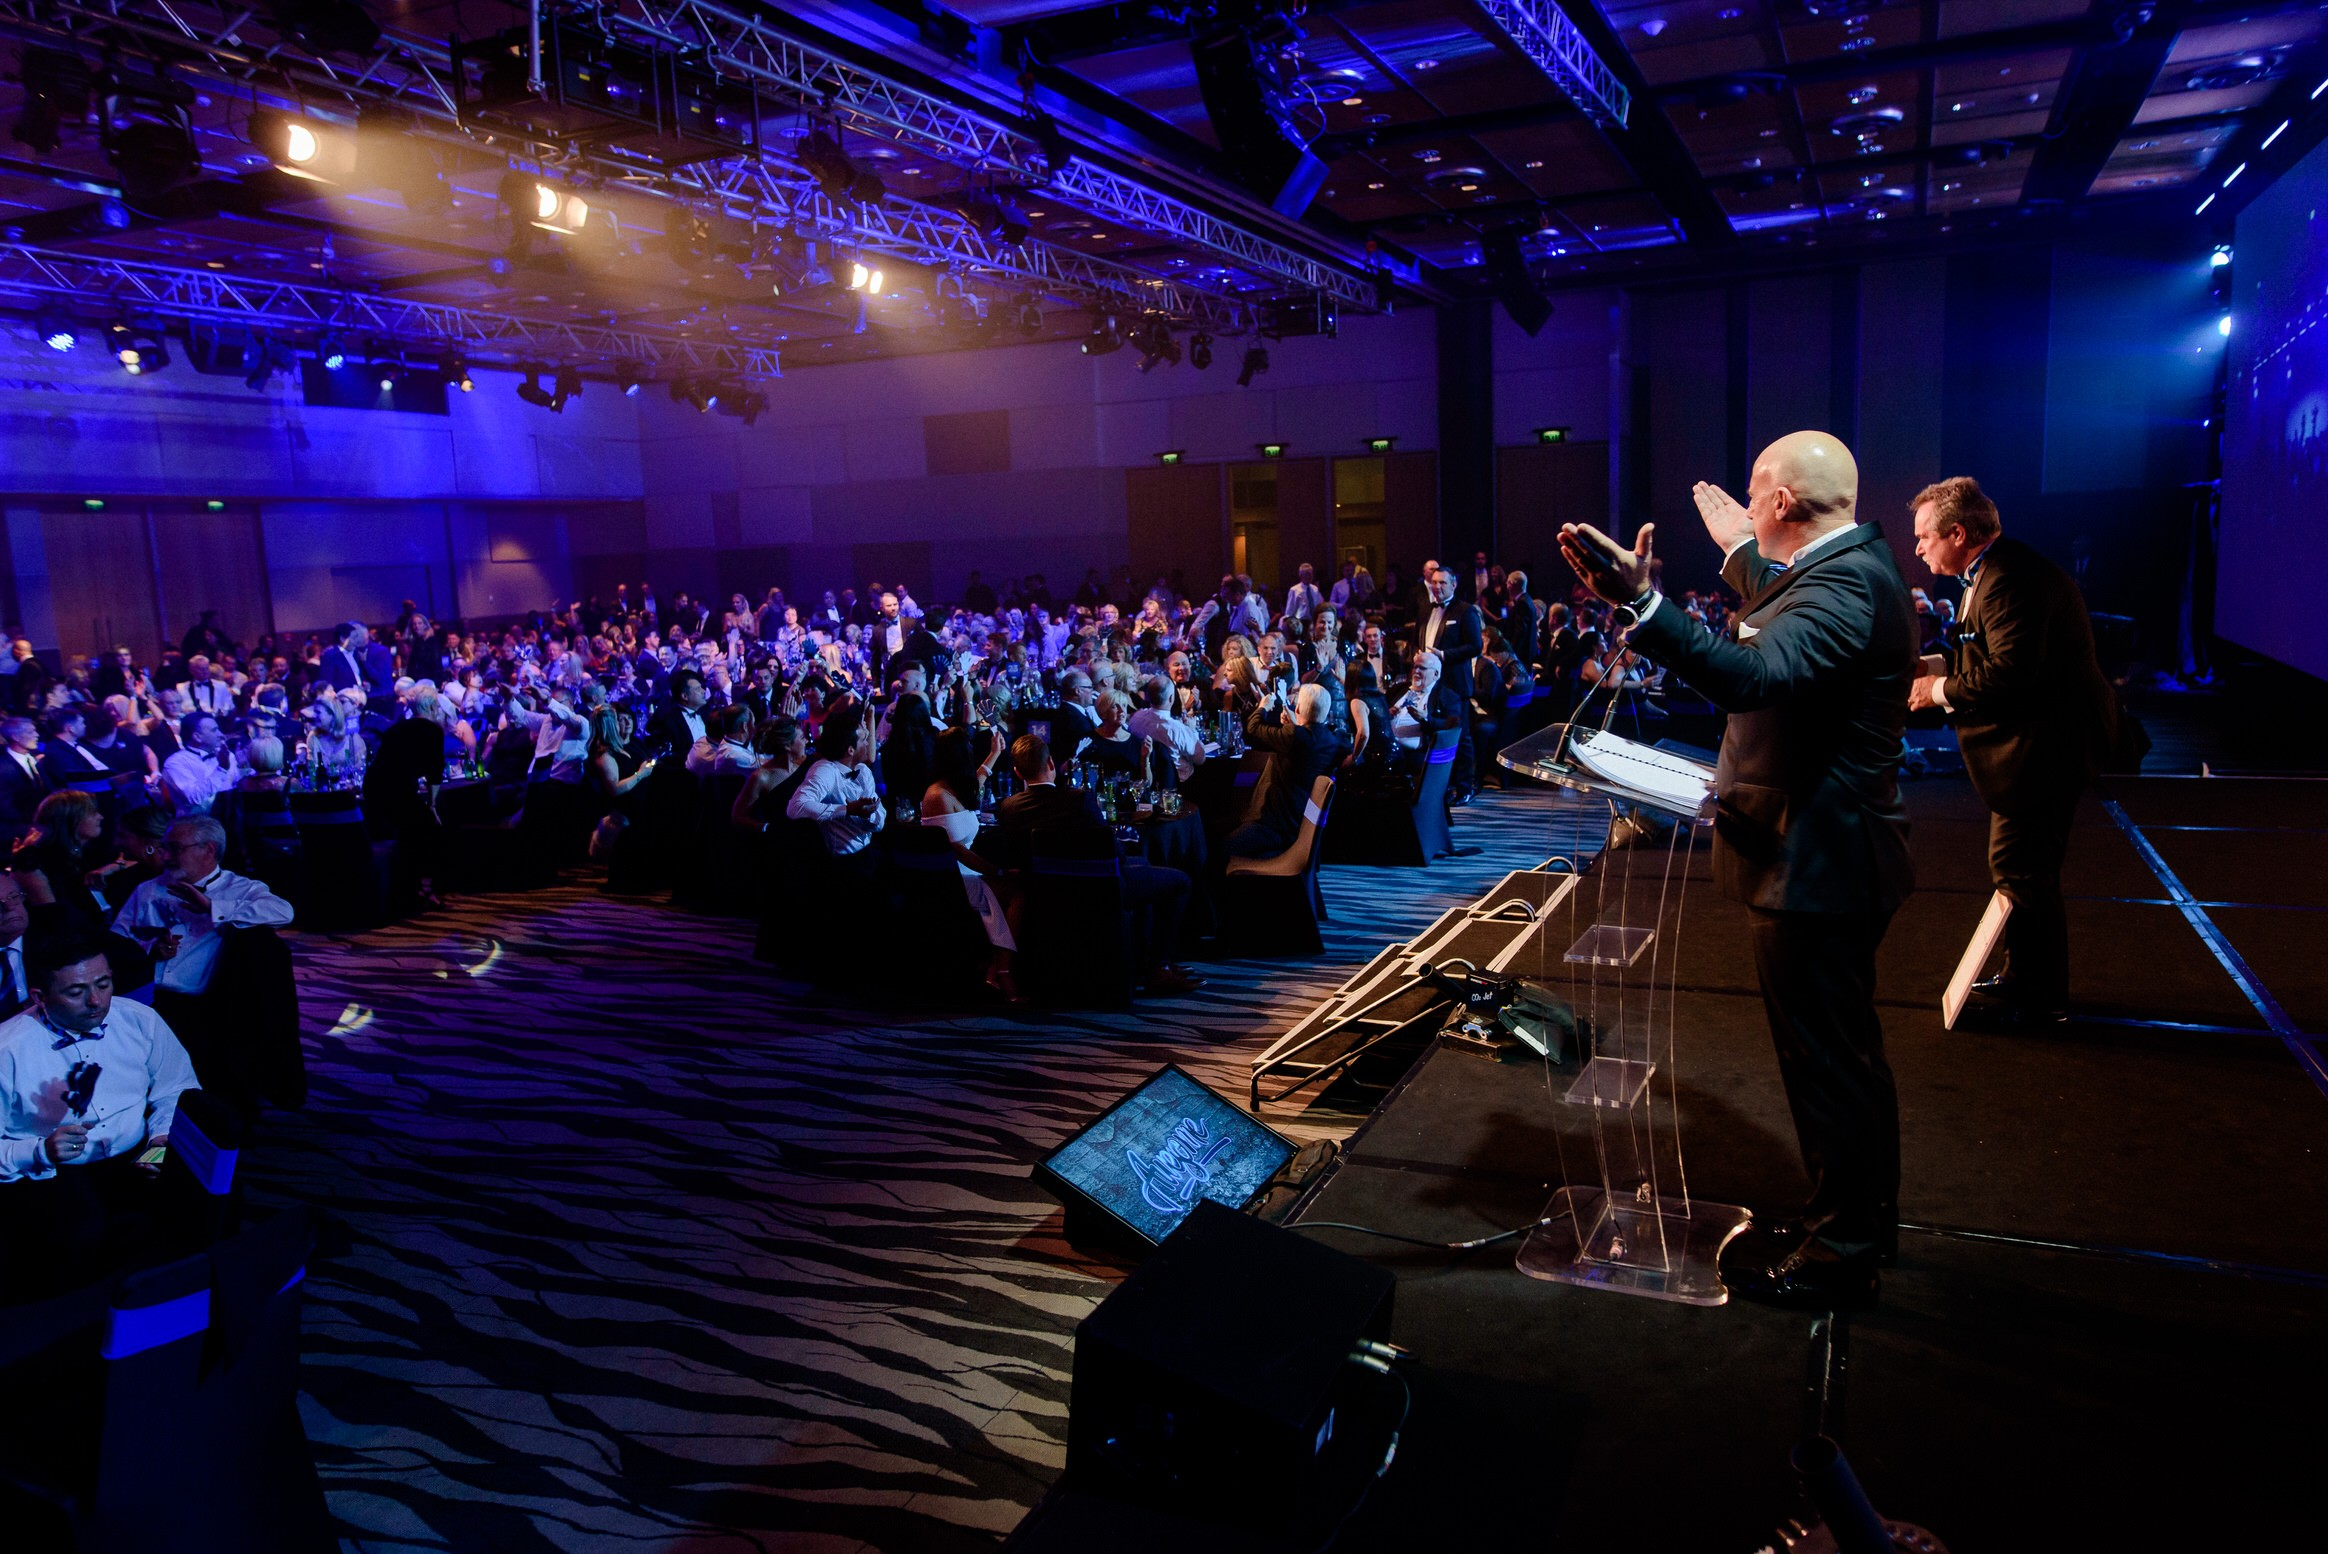 gala, dinner, awards, event, corporate, auckland, skycity